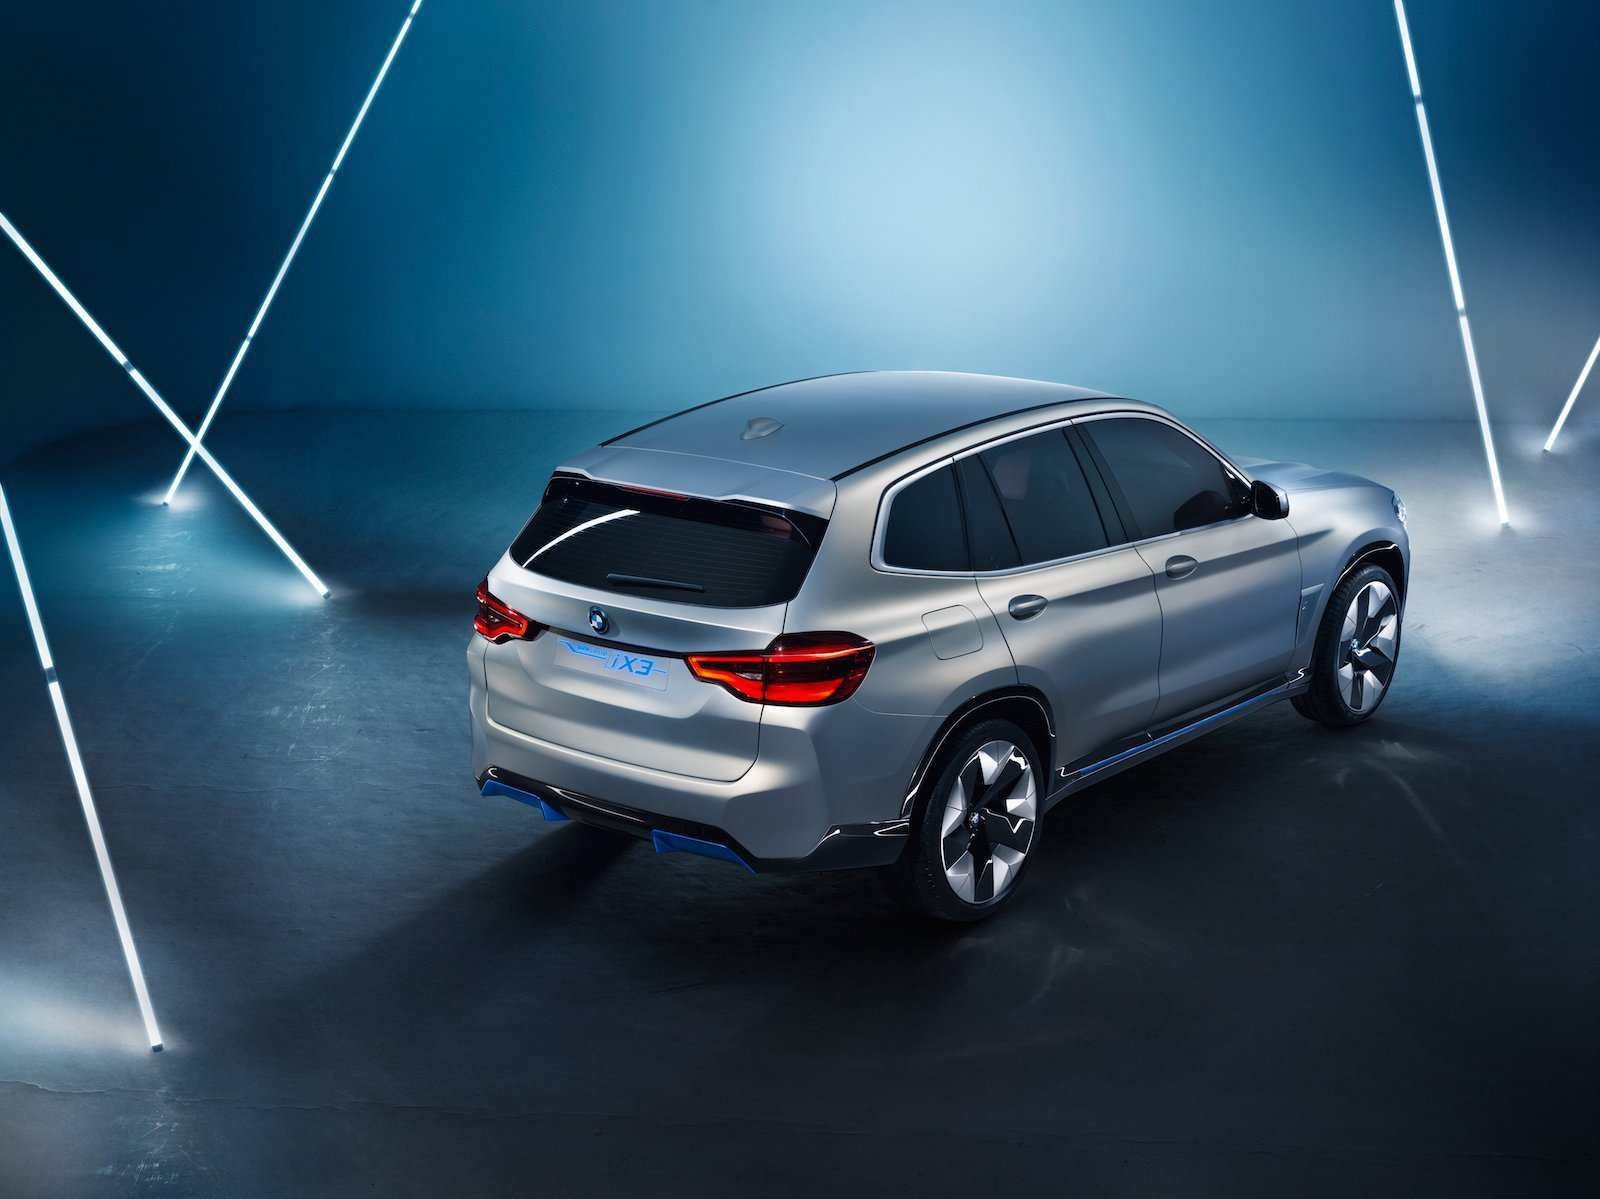 77 Great Bmw Elbil 2020 Price with Bmw Elbil 2020